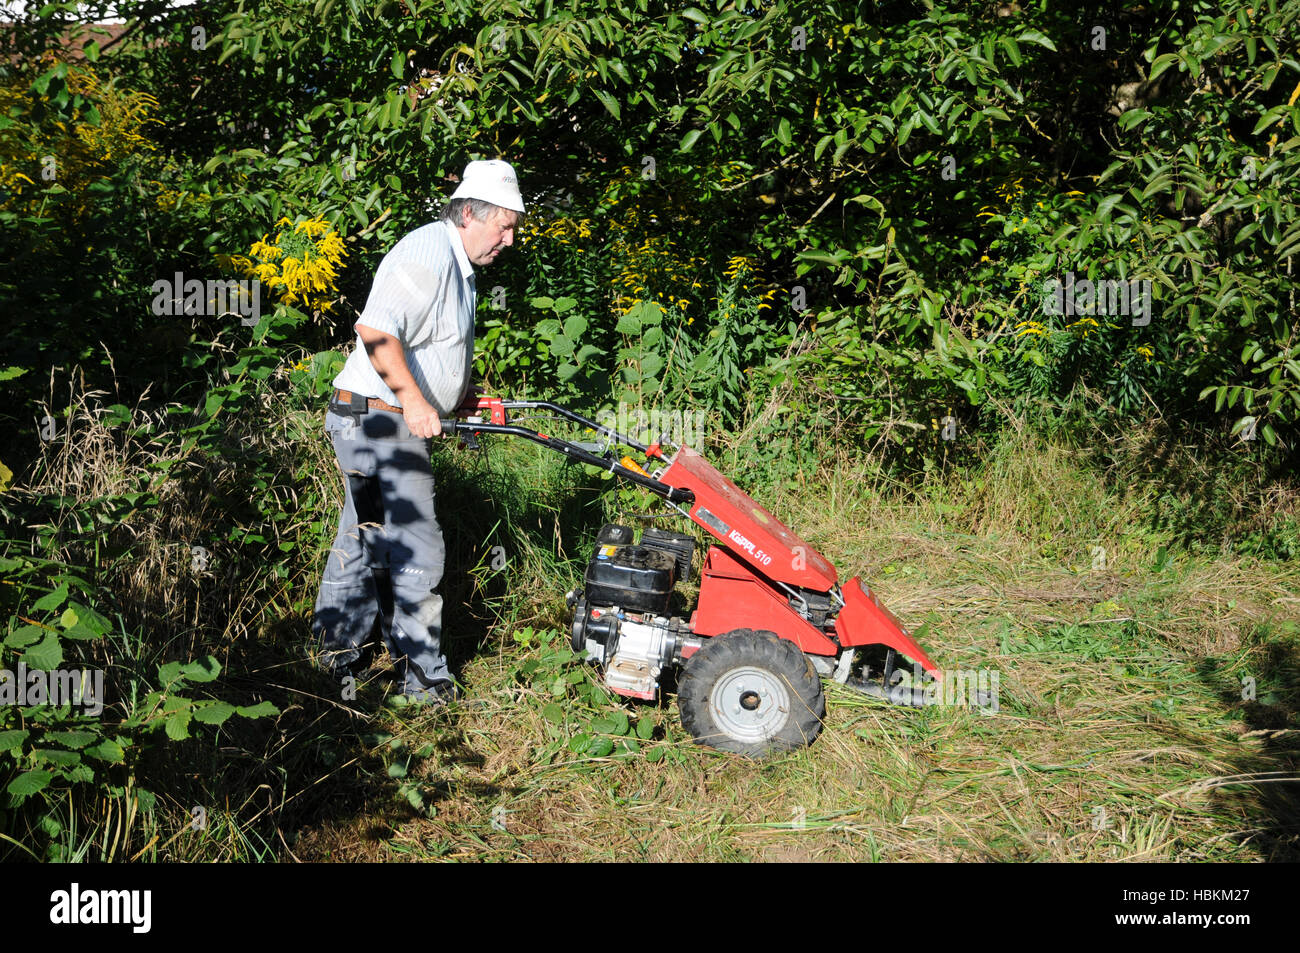 meadow mowing with sickle bar mower Stock Photo: 127666623 - Alamy